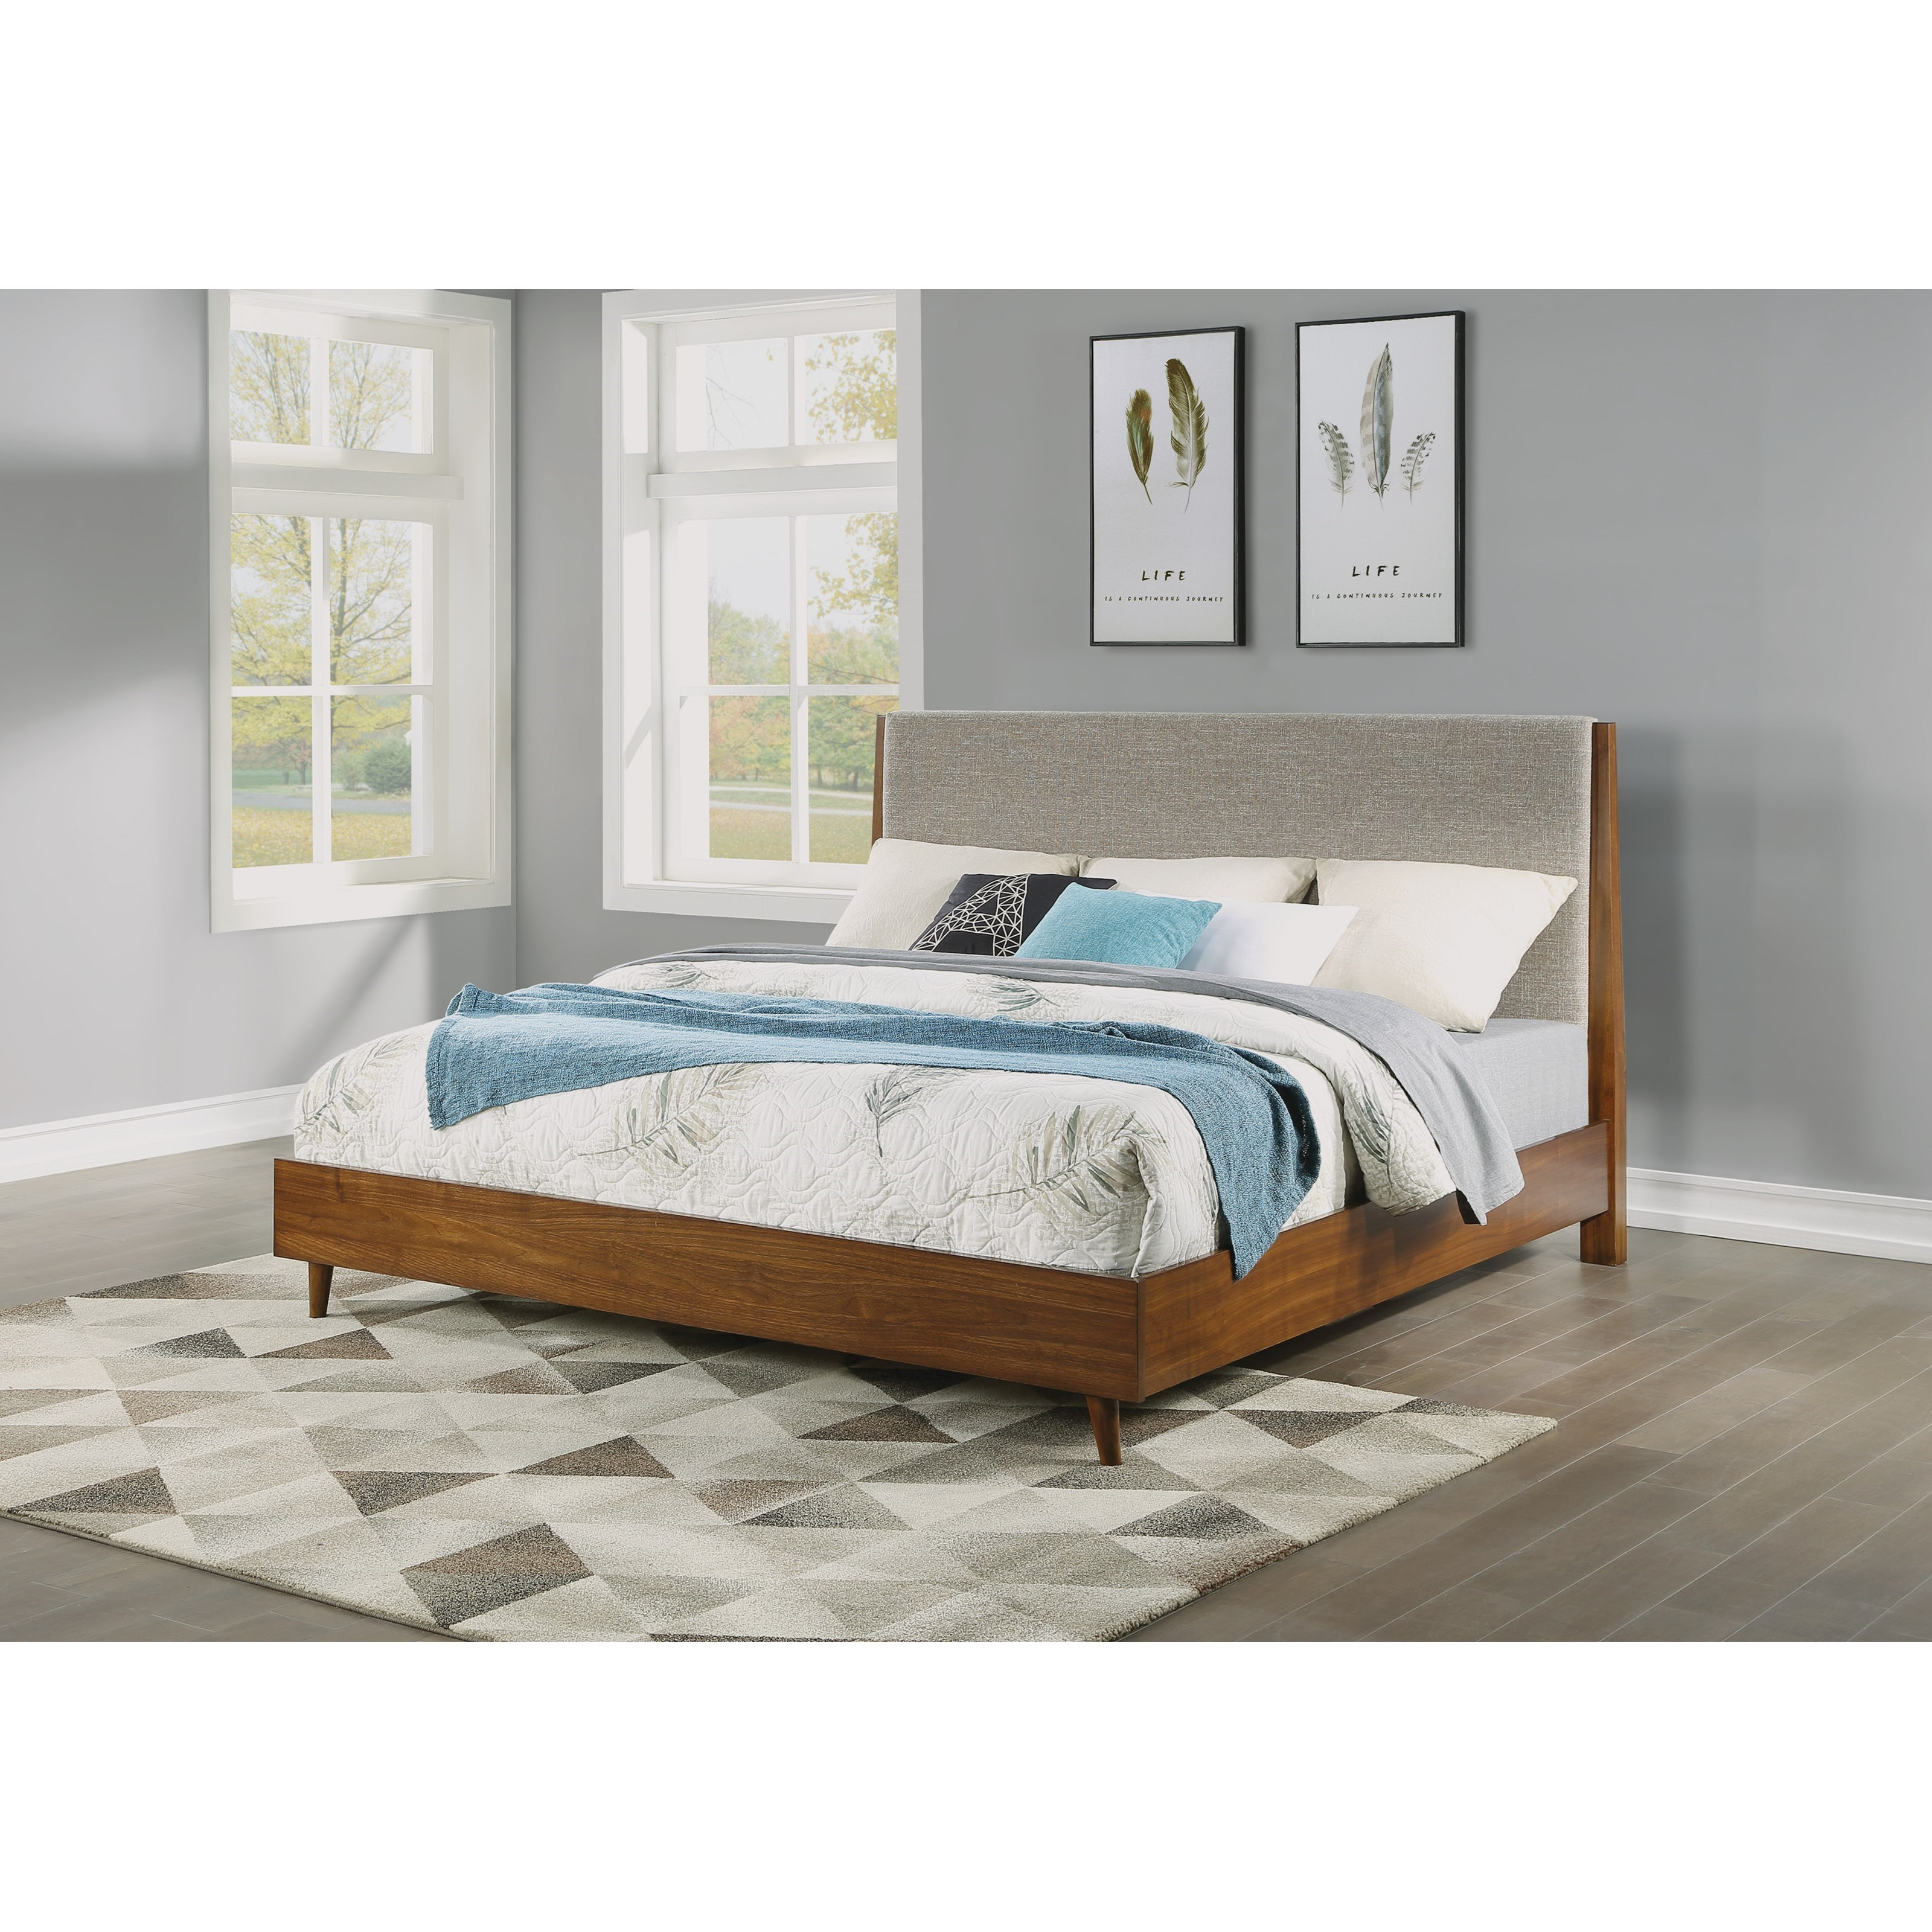 Mid-Century Modern California King Upholstered Bed with Platform Frame